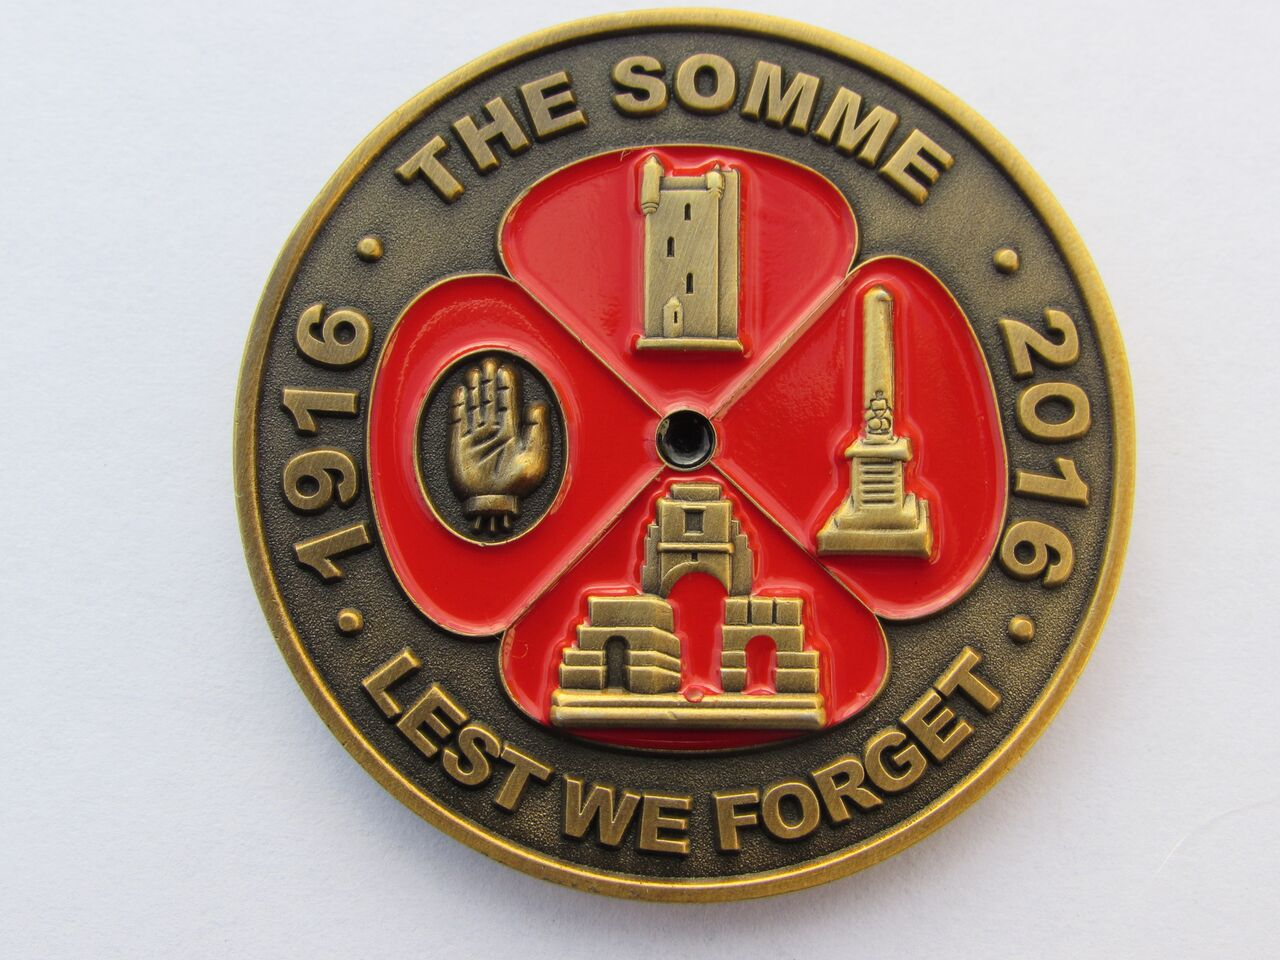 The coin contains images of Somme tributes including the Ulster